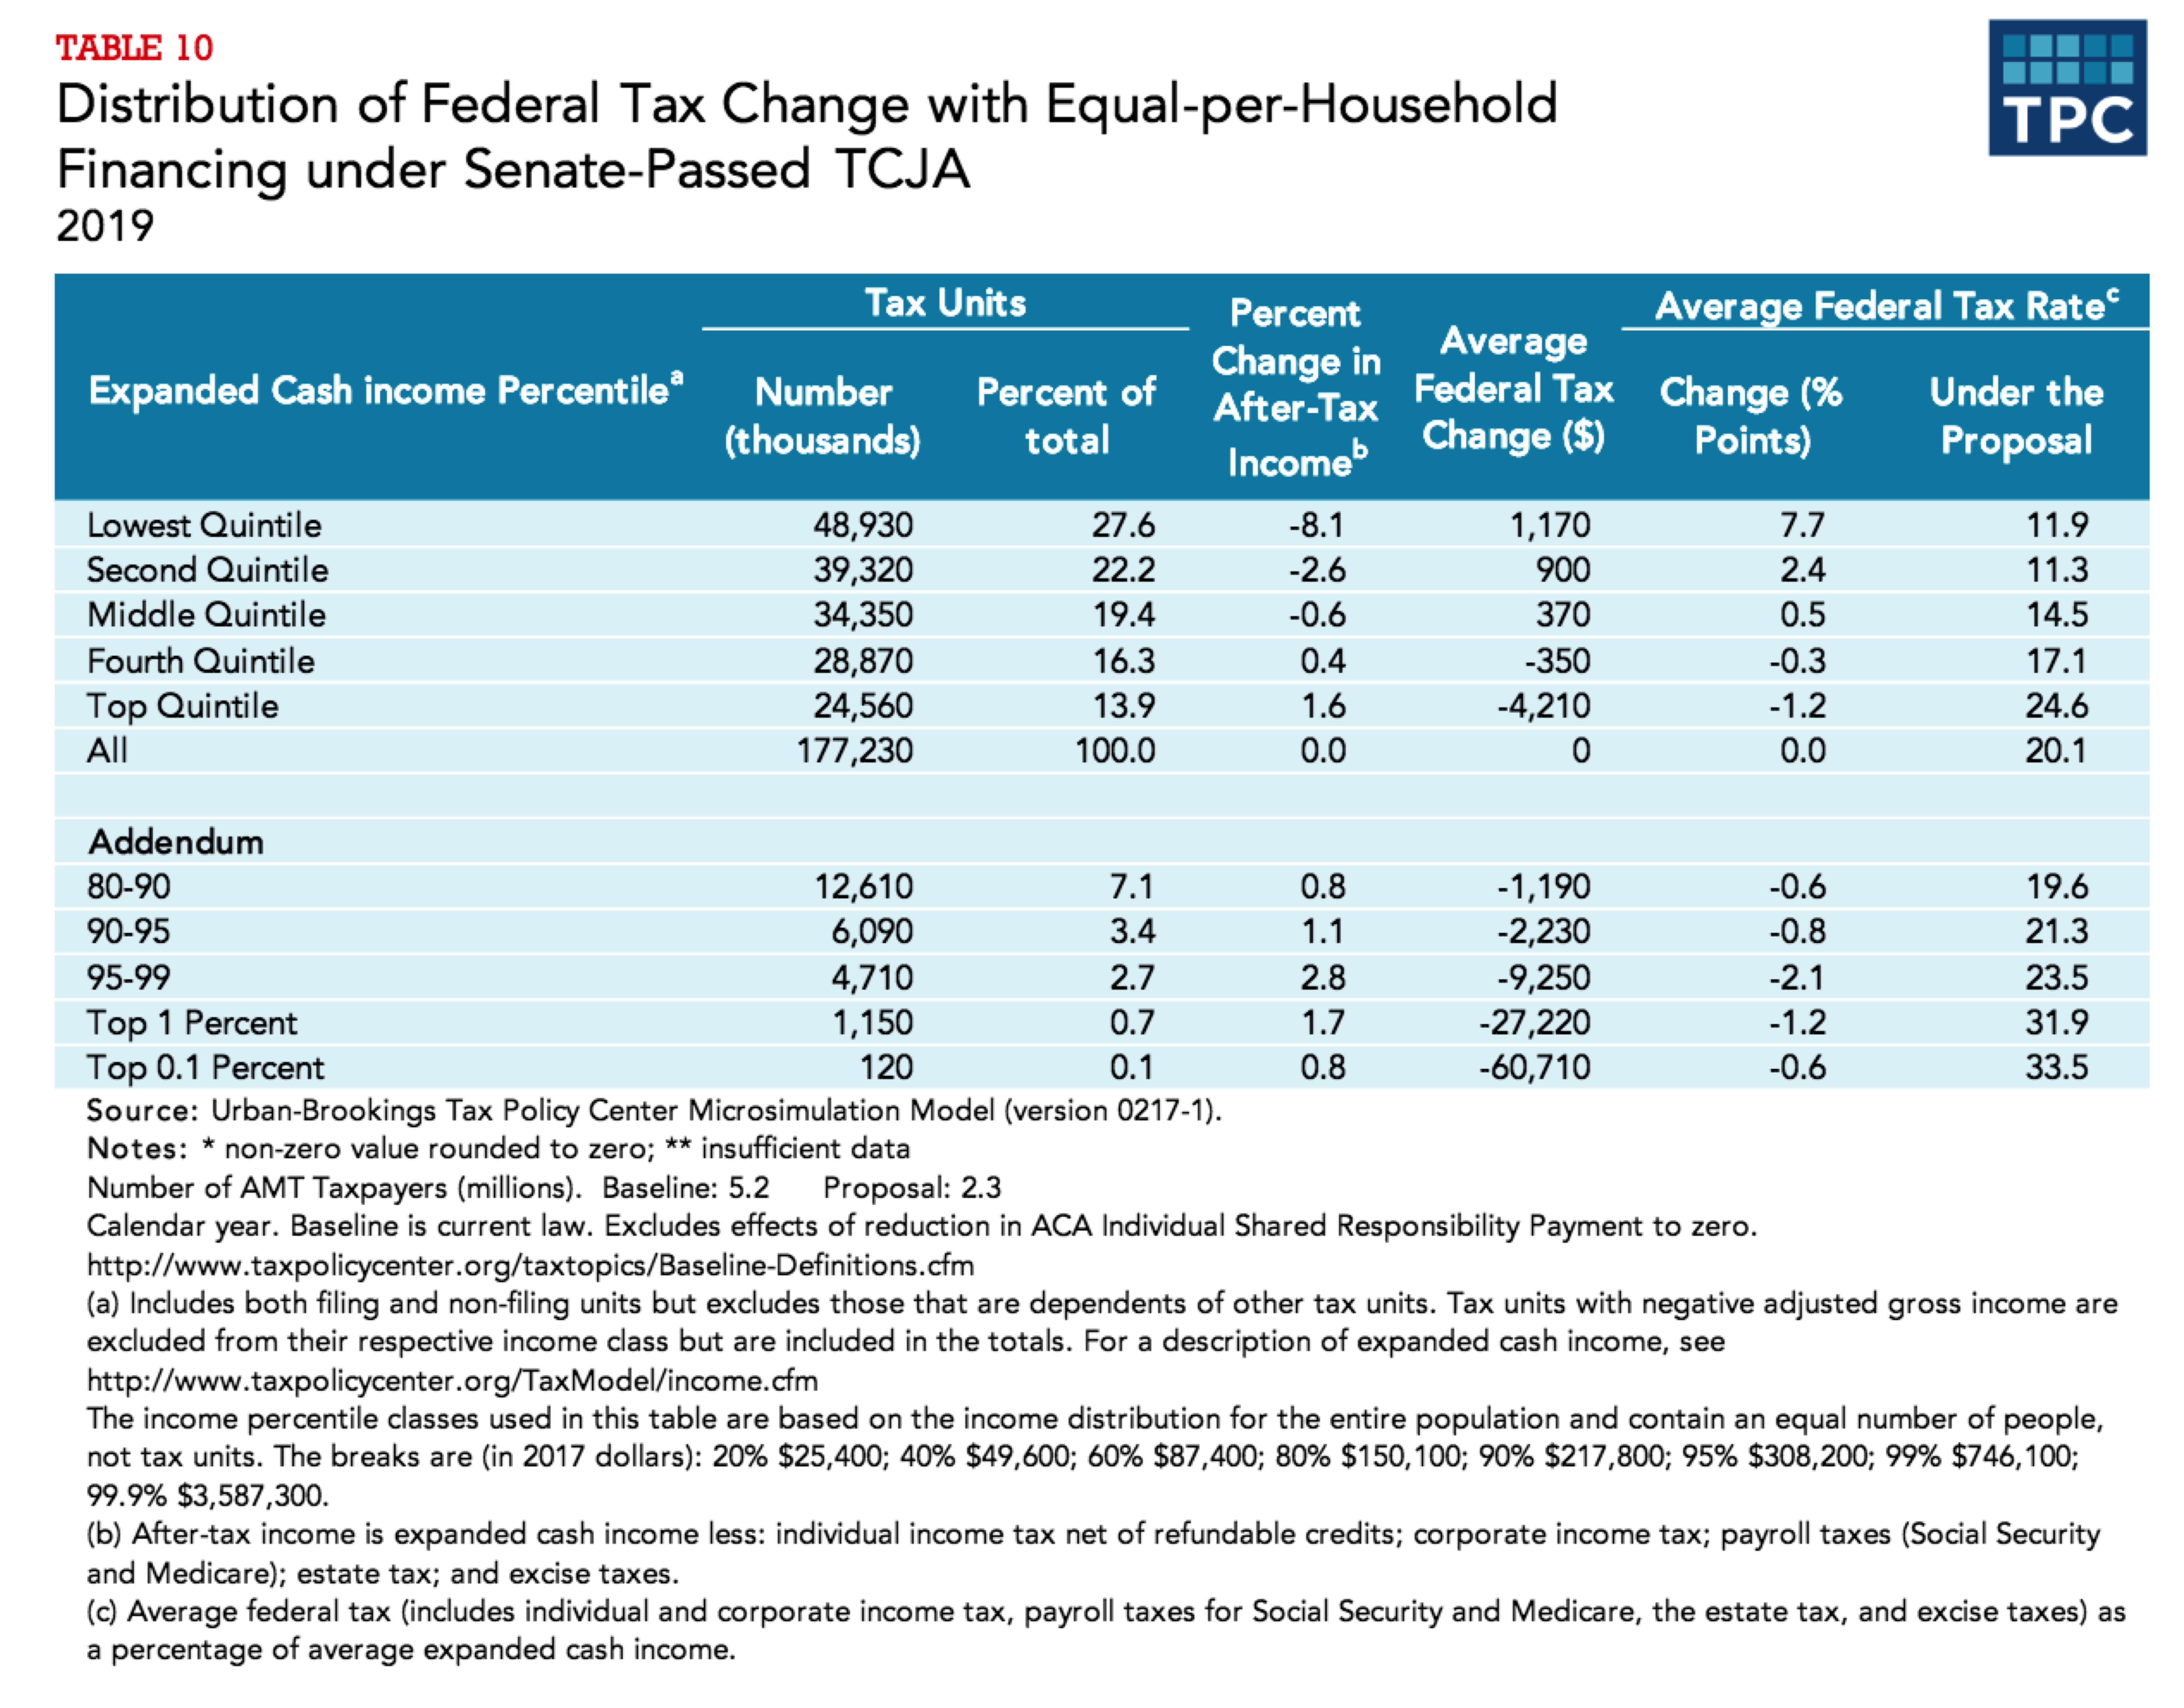 Distribution of Senate tax bill after equal-per-household financing.